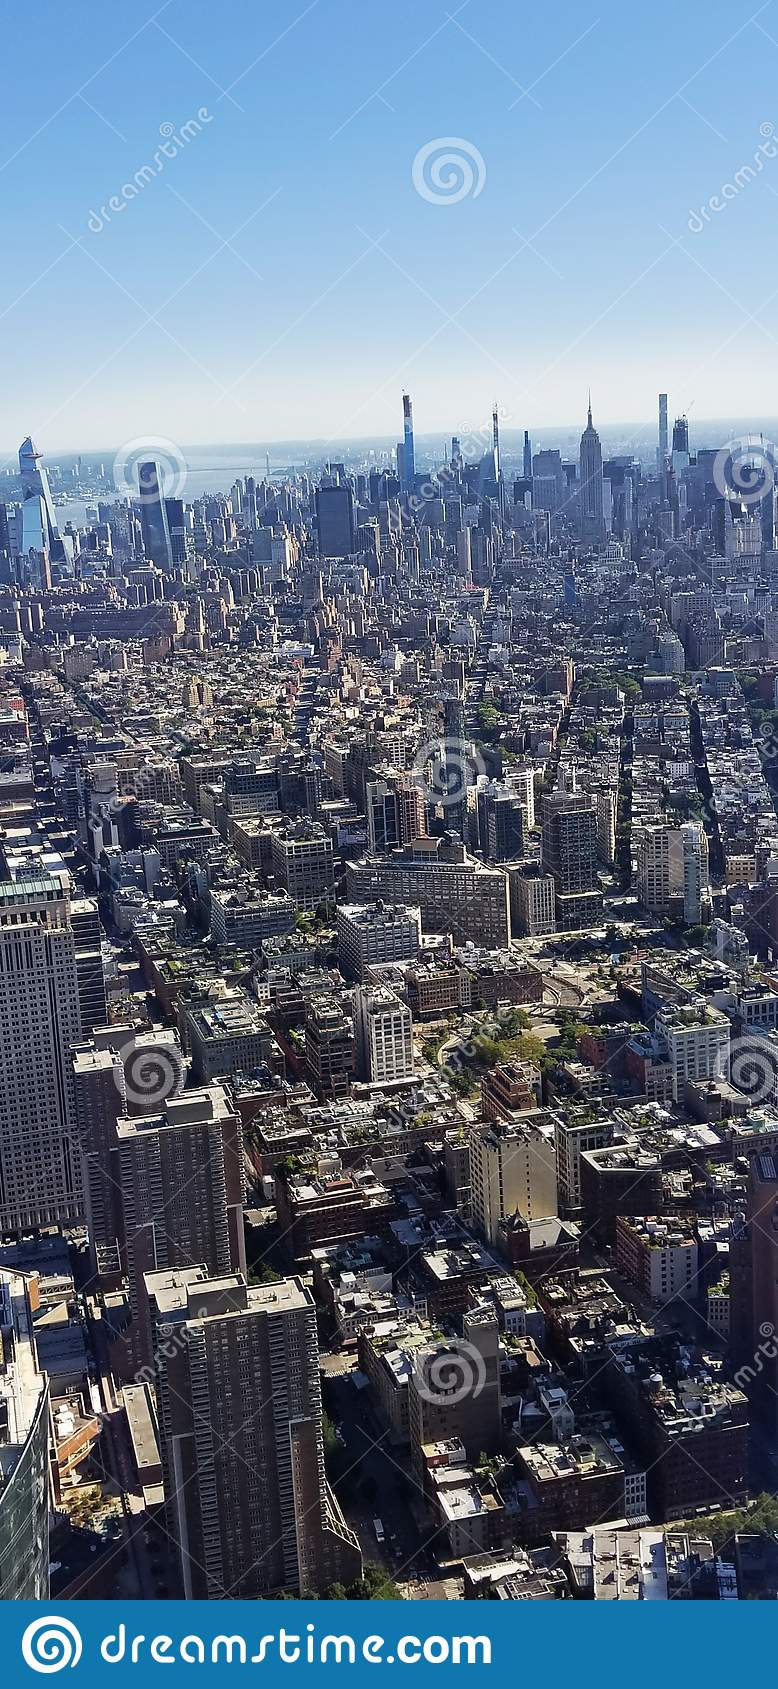 New York City Buildings Skyline View From Above